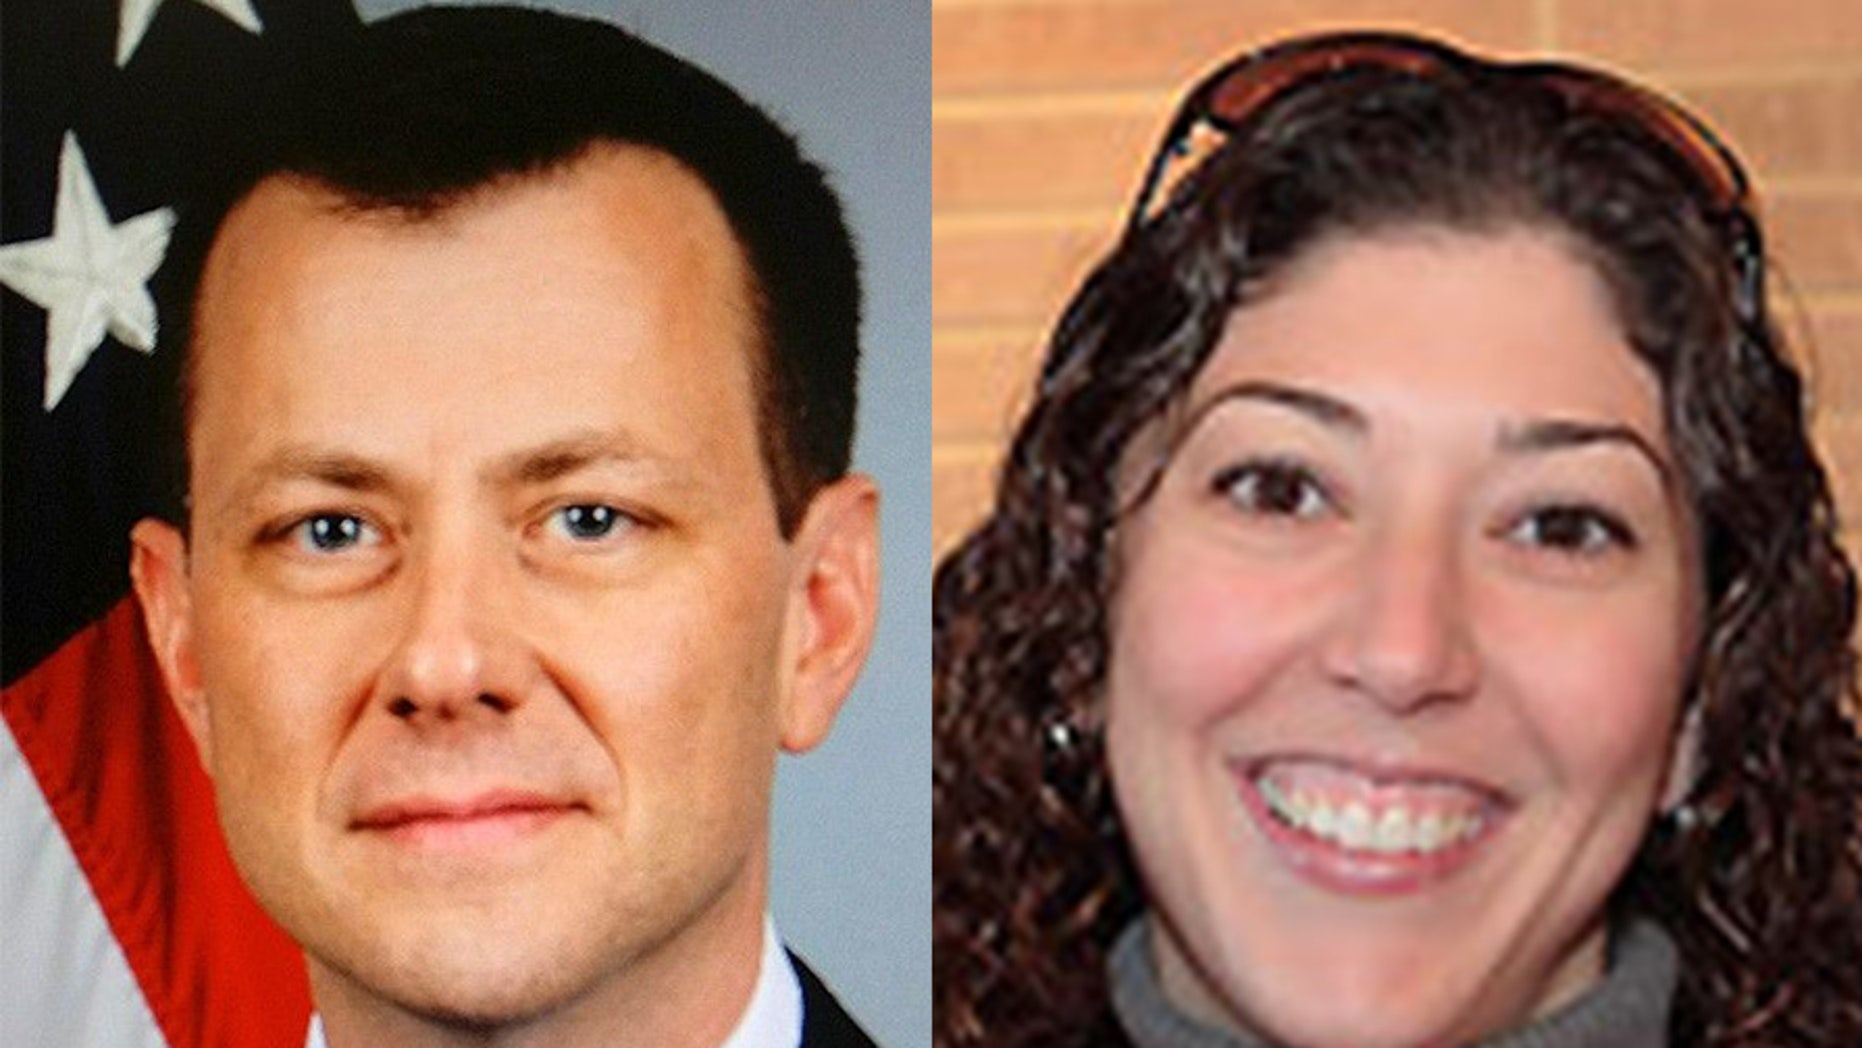 FBI officials Peter Strzok, left, and Lisa Page, right, exchanged more than 50,000 text messages during the 2016 presidential election.